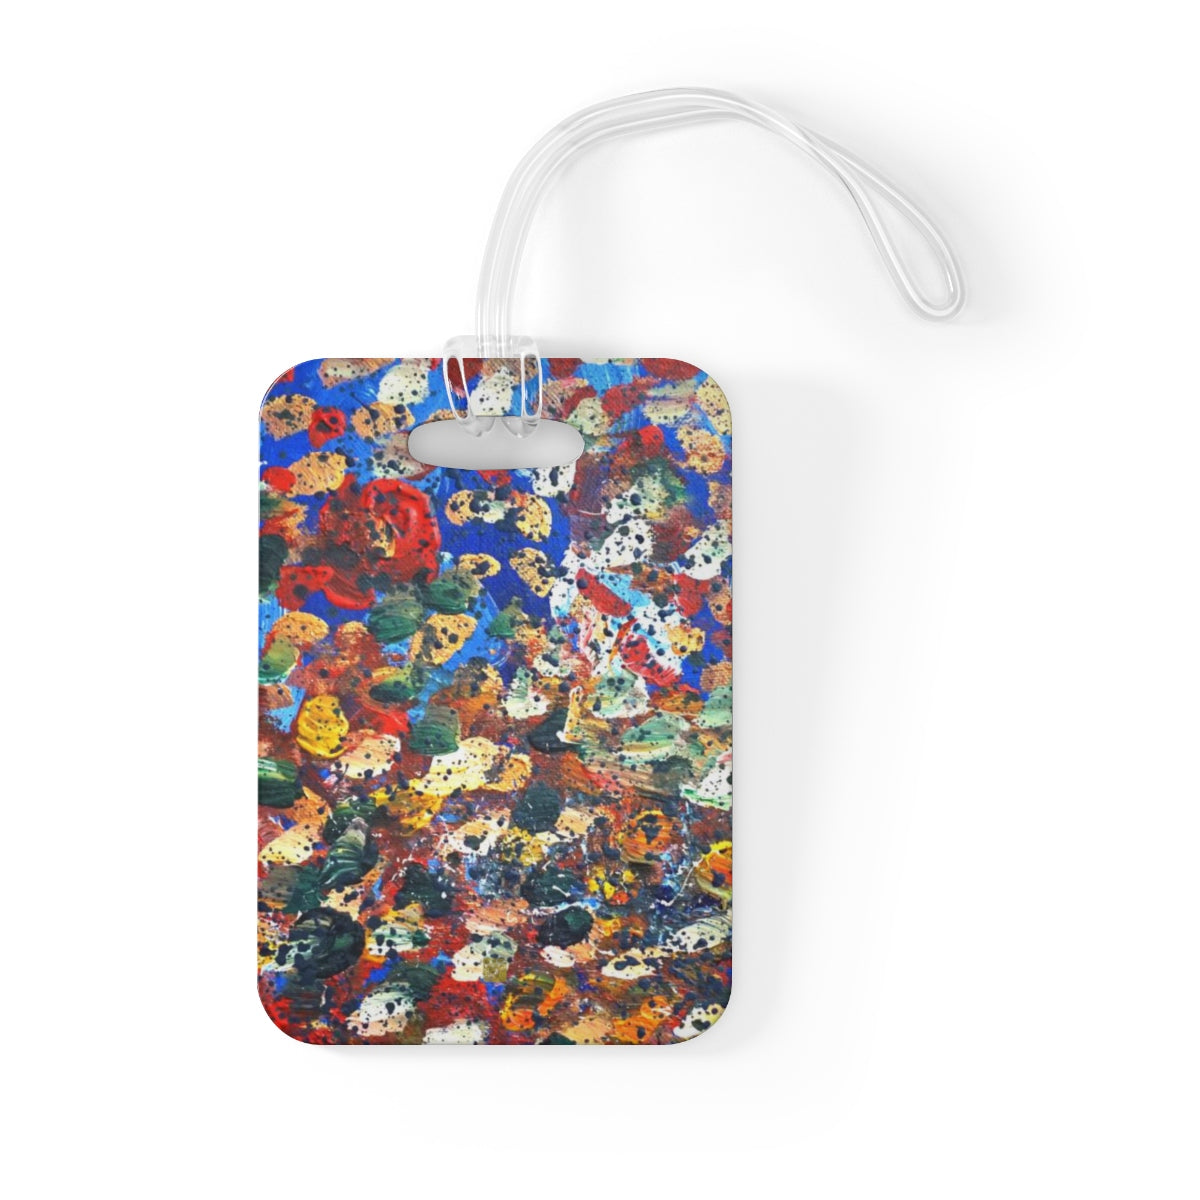 Raindrops 2/3 Designer Abstract Artistic Dotted, Glossy Lightweight Plastic Bag Tag, Made in USA - alicechanart